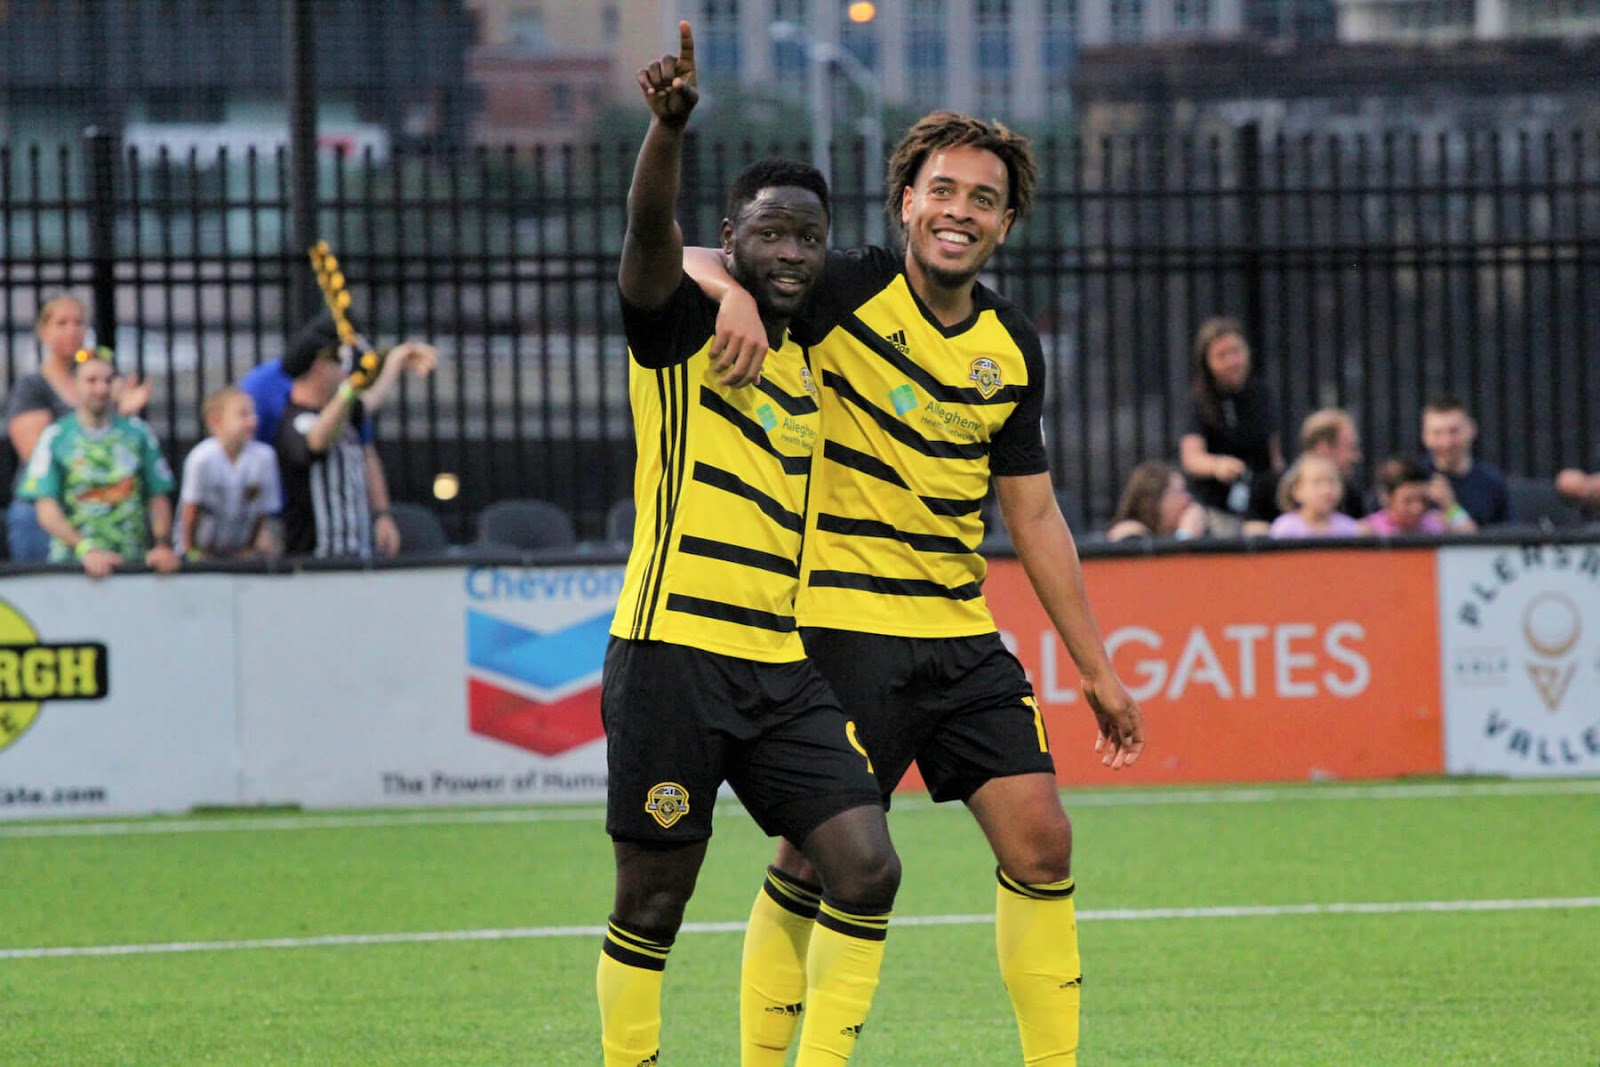 two members of Riverhounds soccer team